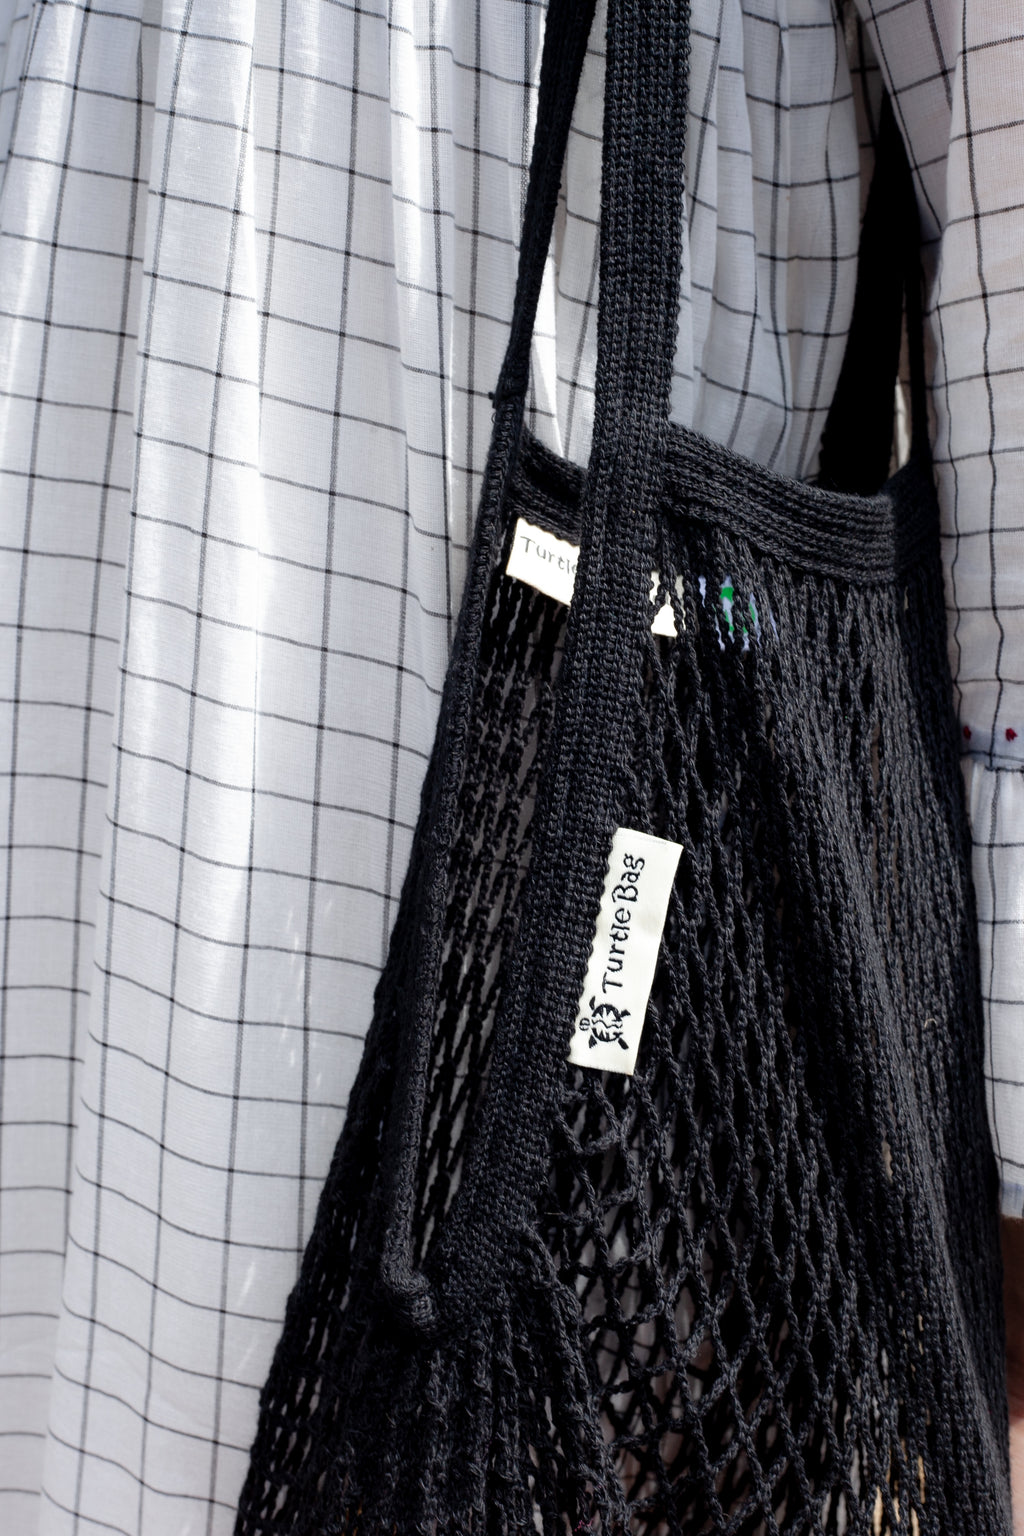 Turtle Bags Black Organic String Bag - The Mercantile London